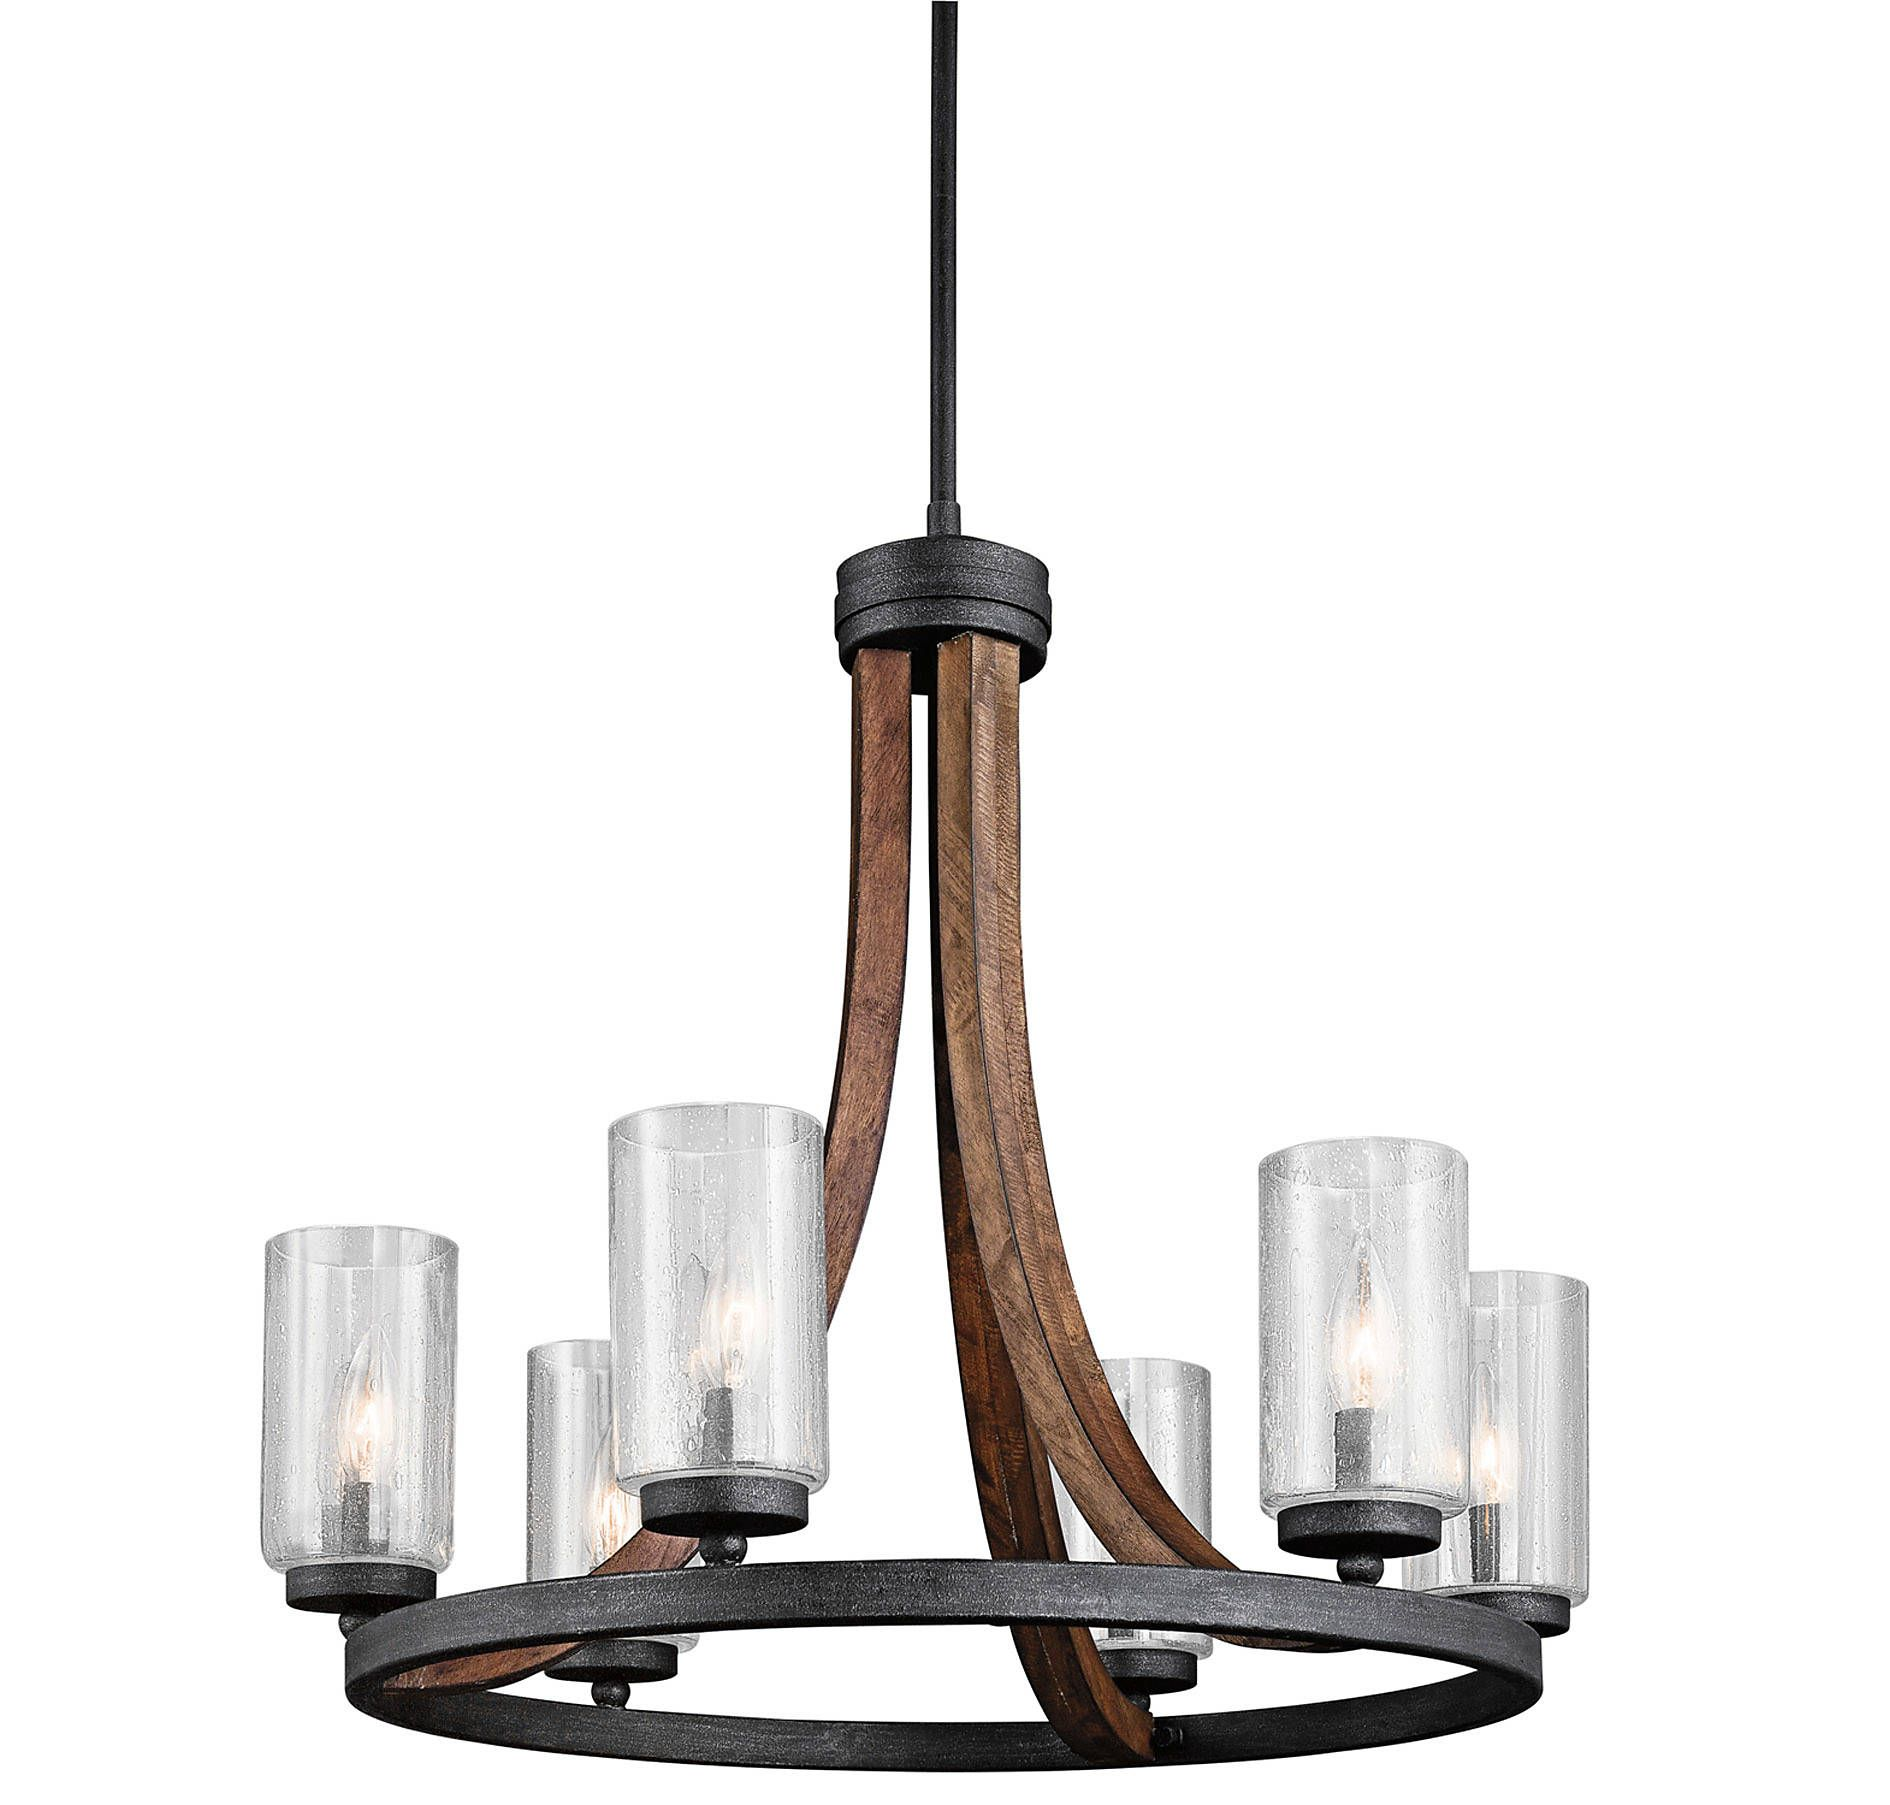 Kichler AUB Grand Bank 6 Light Chandelier 1 Tier Medium in